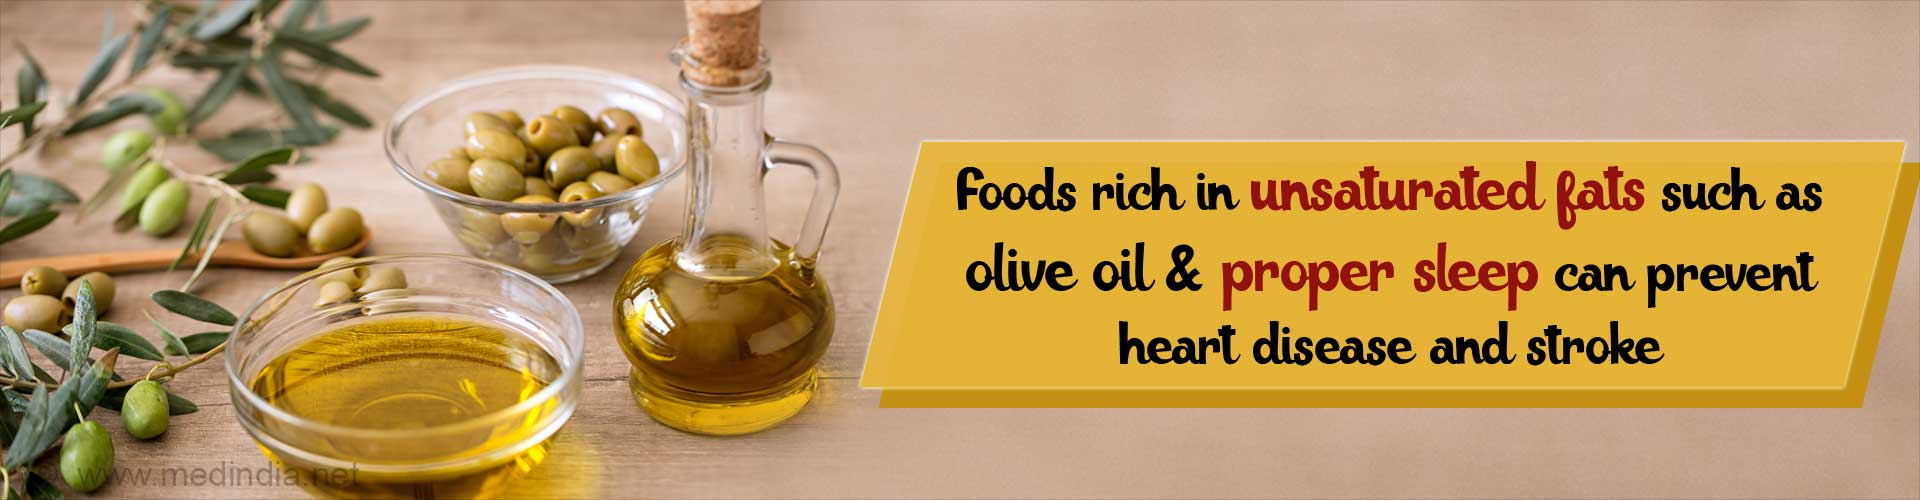 Foods rich in unsaturated fats such as olive oil and proper sleep can prevent heart disease and stroke.